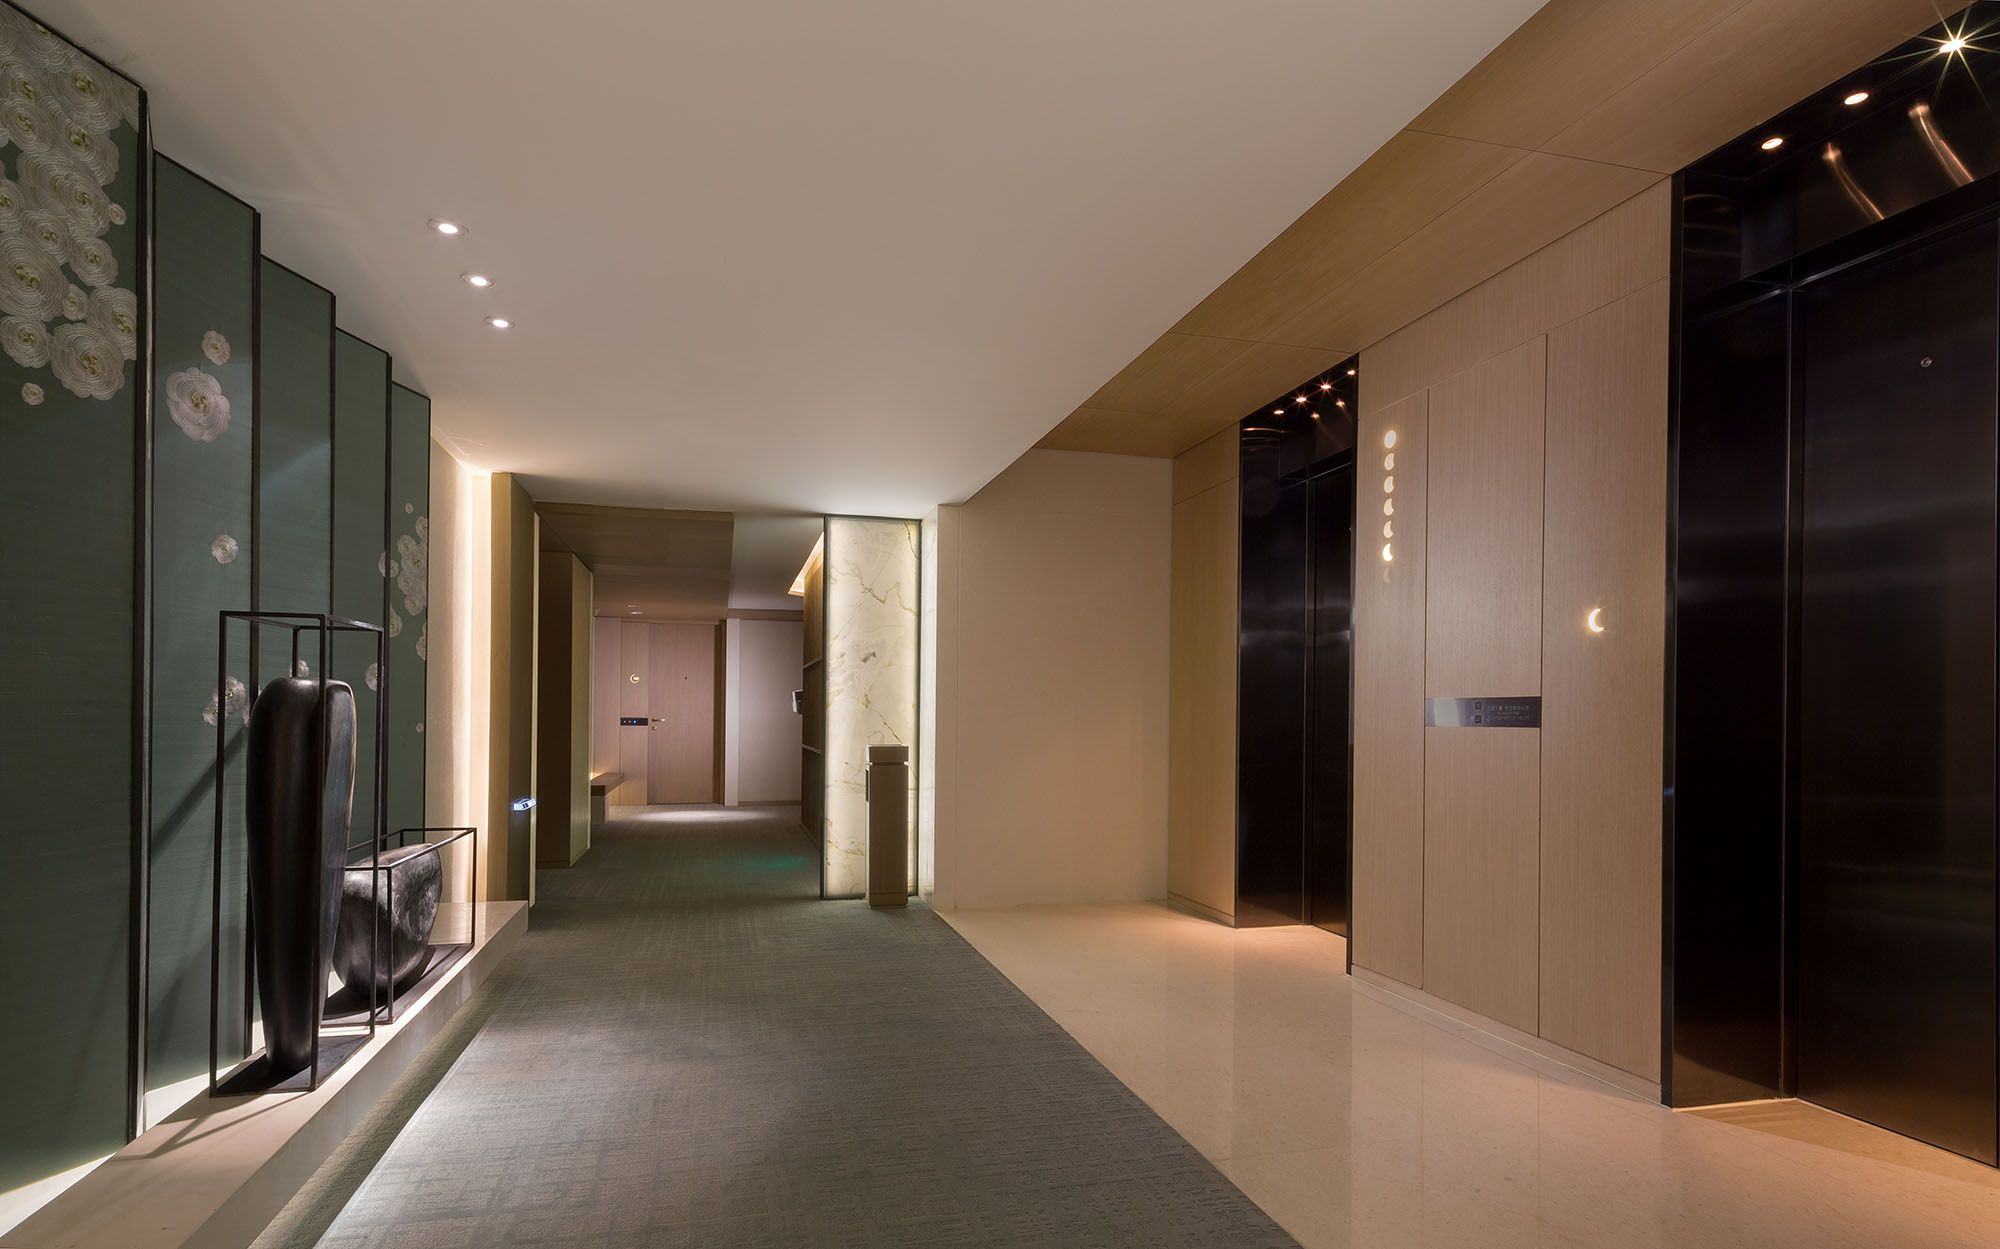 The East Hotel In Hangzhou Design By Andy Zon C 室内